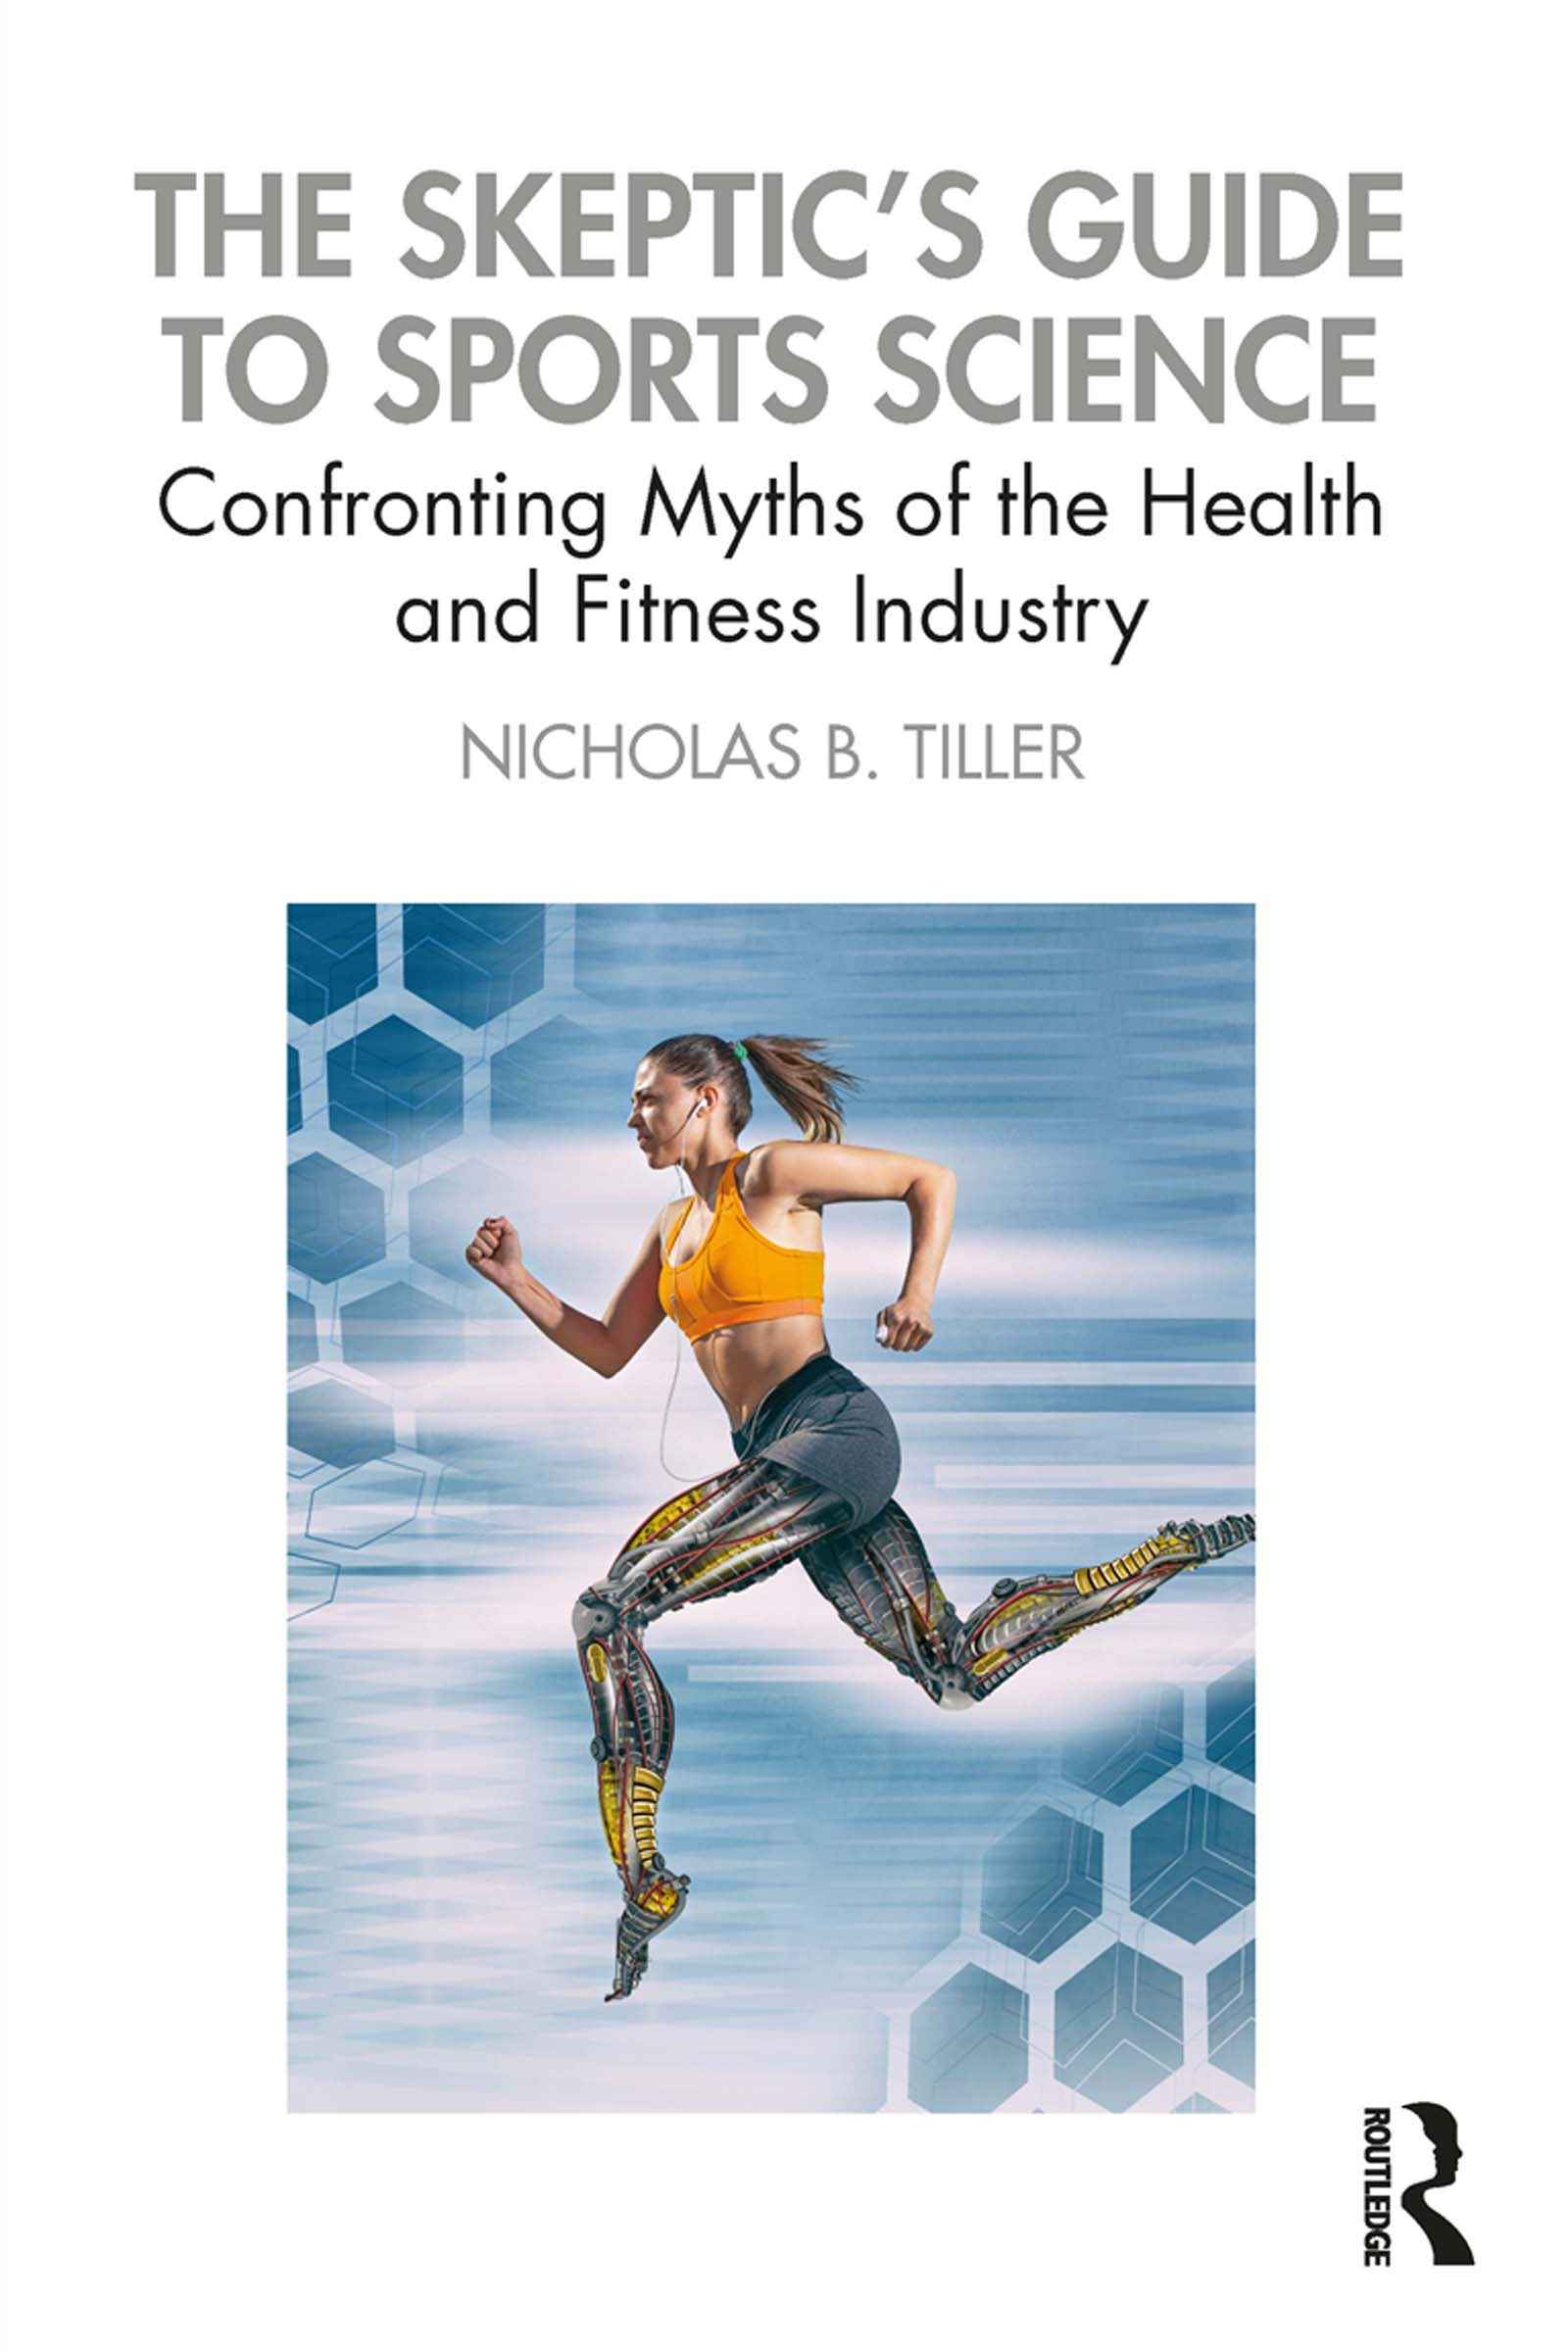 The Skeptic's Guide to Sports Science: Confronting Myths of the Health and Fitness Industry book cover